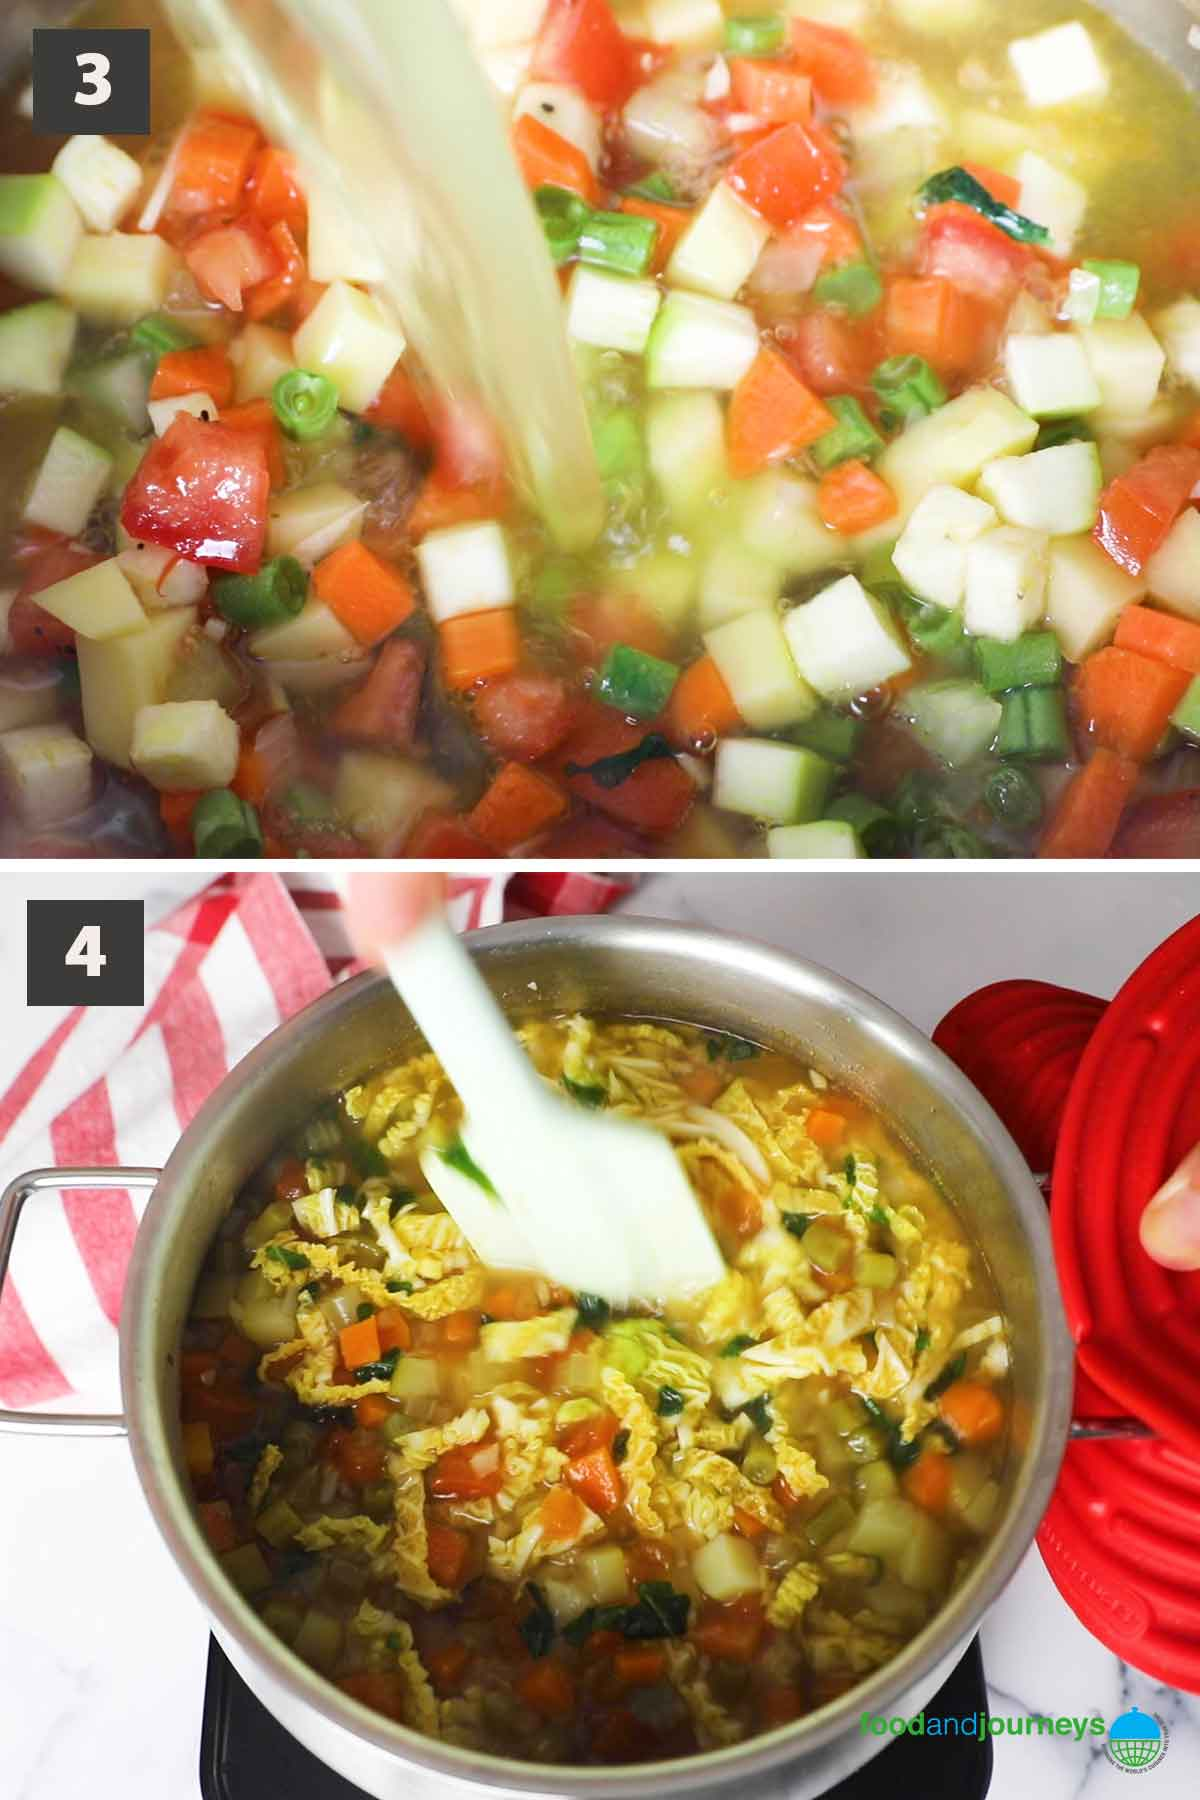 Updated second part of a collage of images showing the step by step process of making summer minestrone at home.